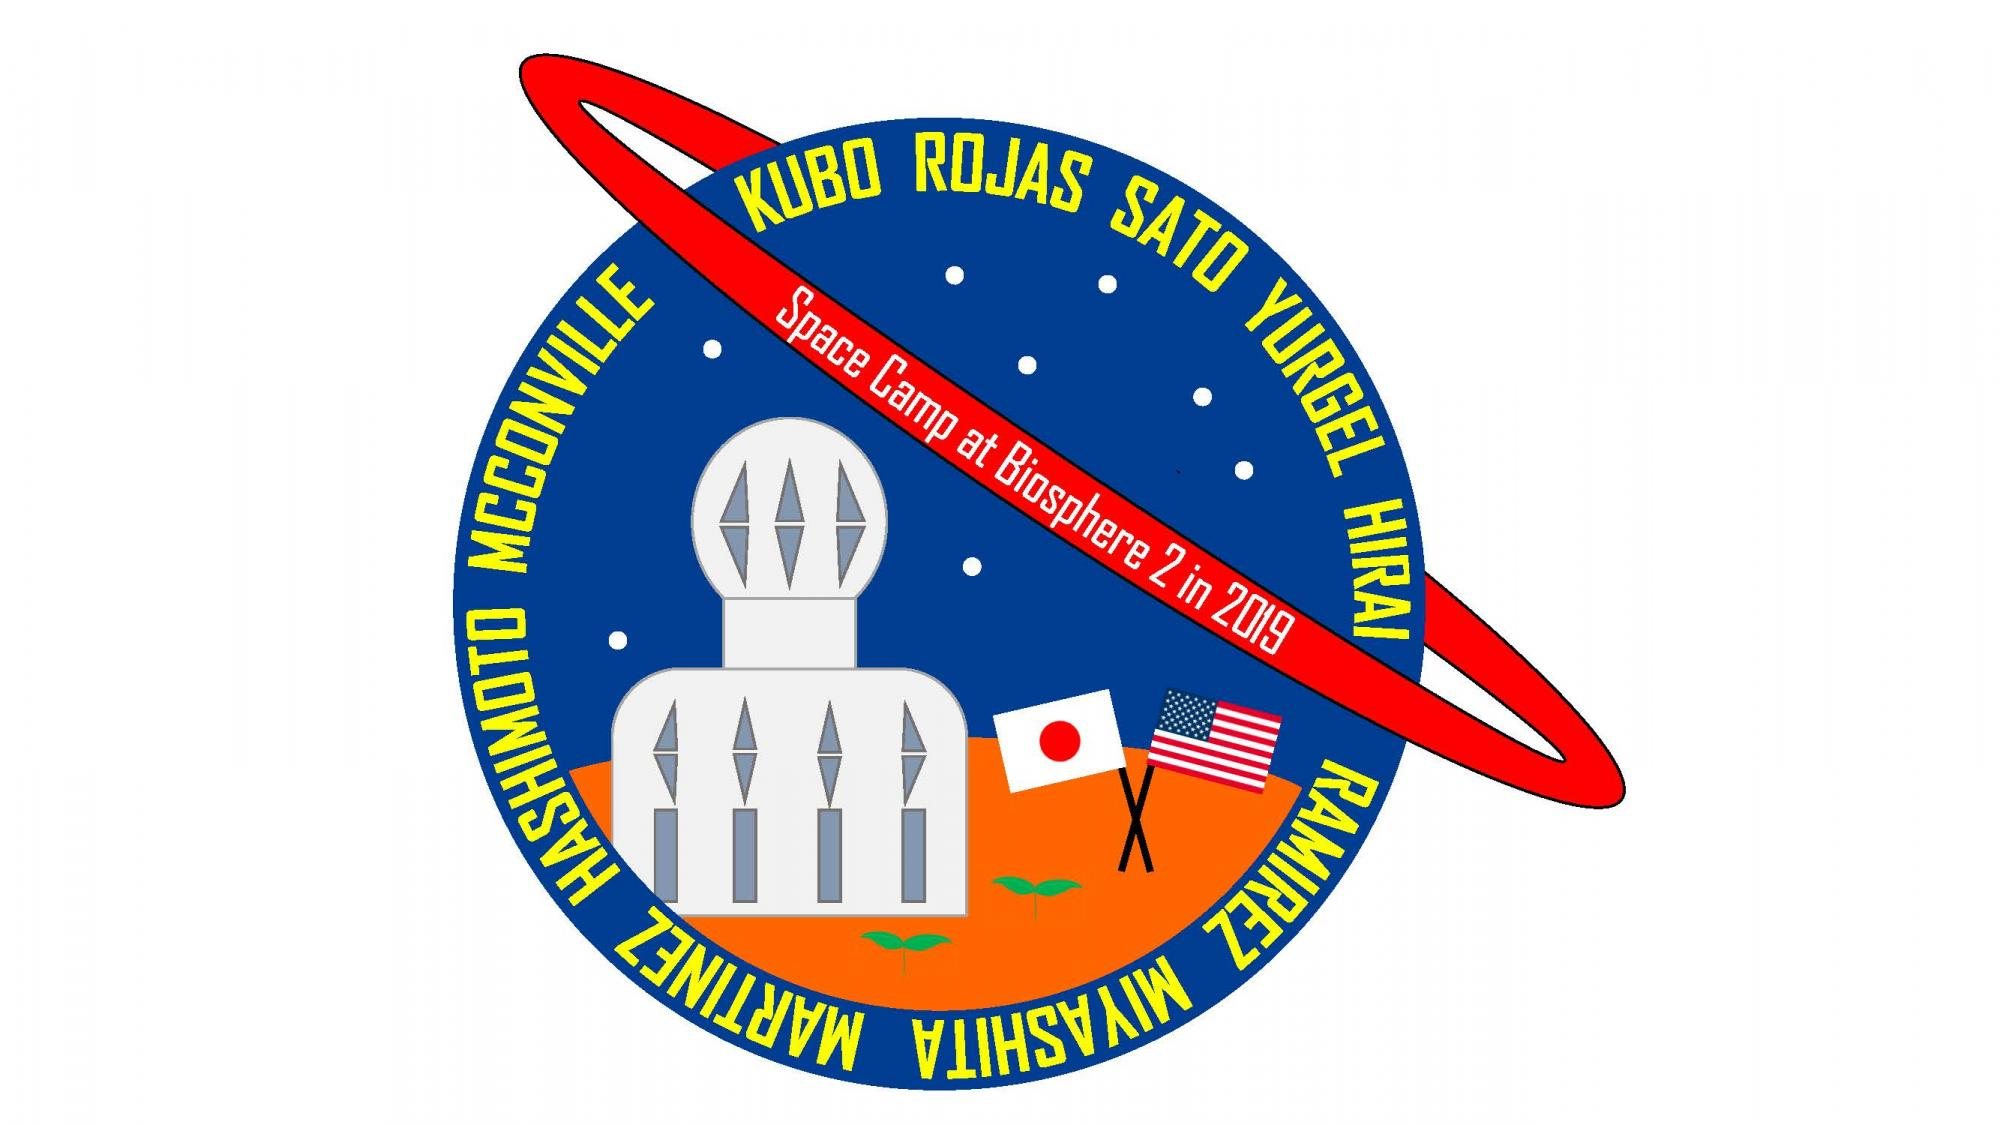 Space Camp at Biosphere 2 logo designed by Kyoto University students.